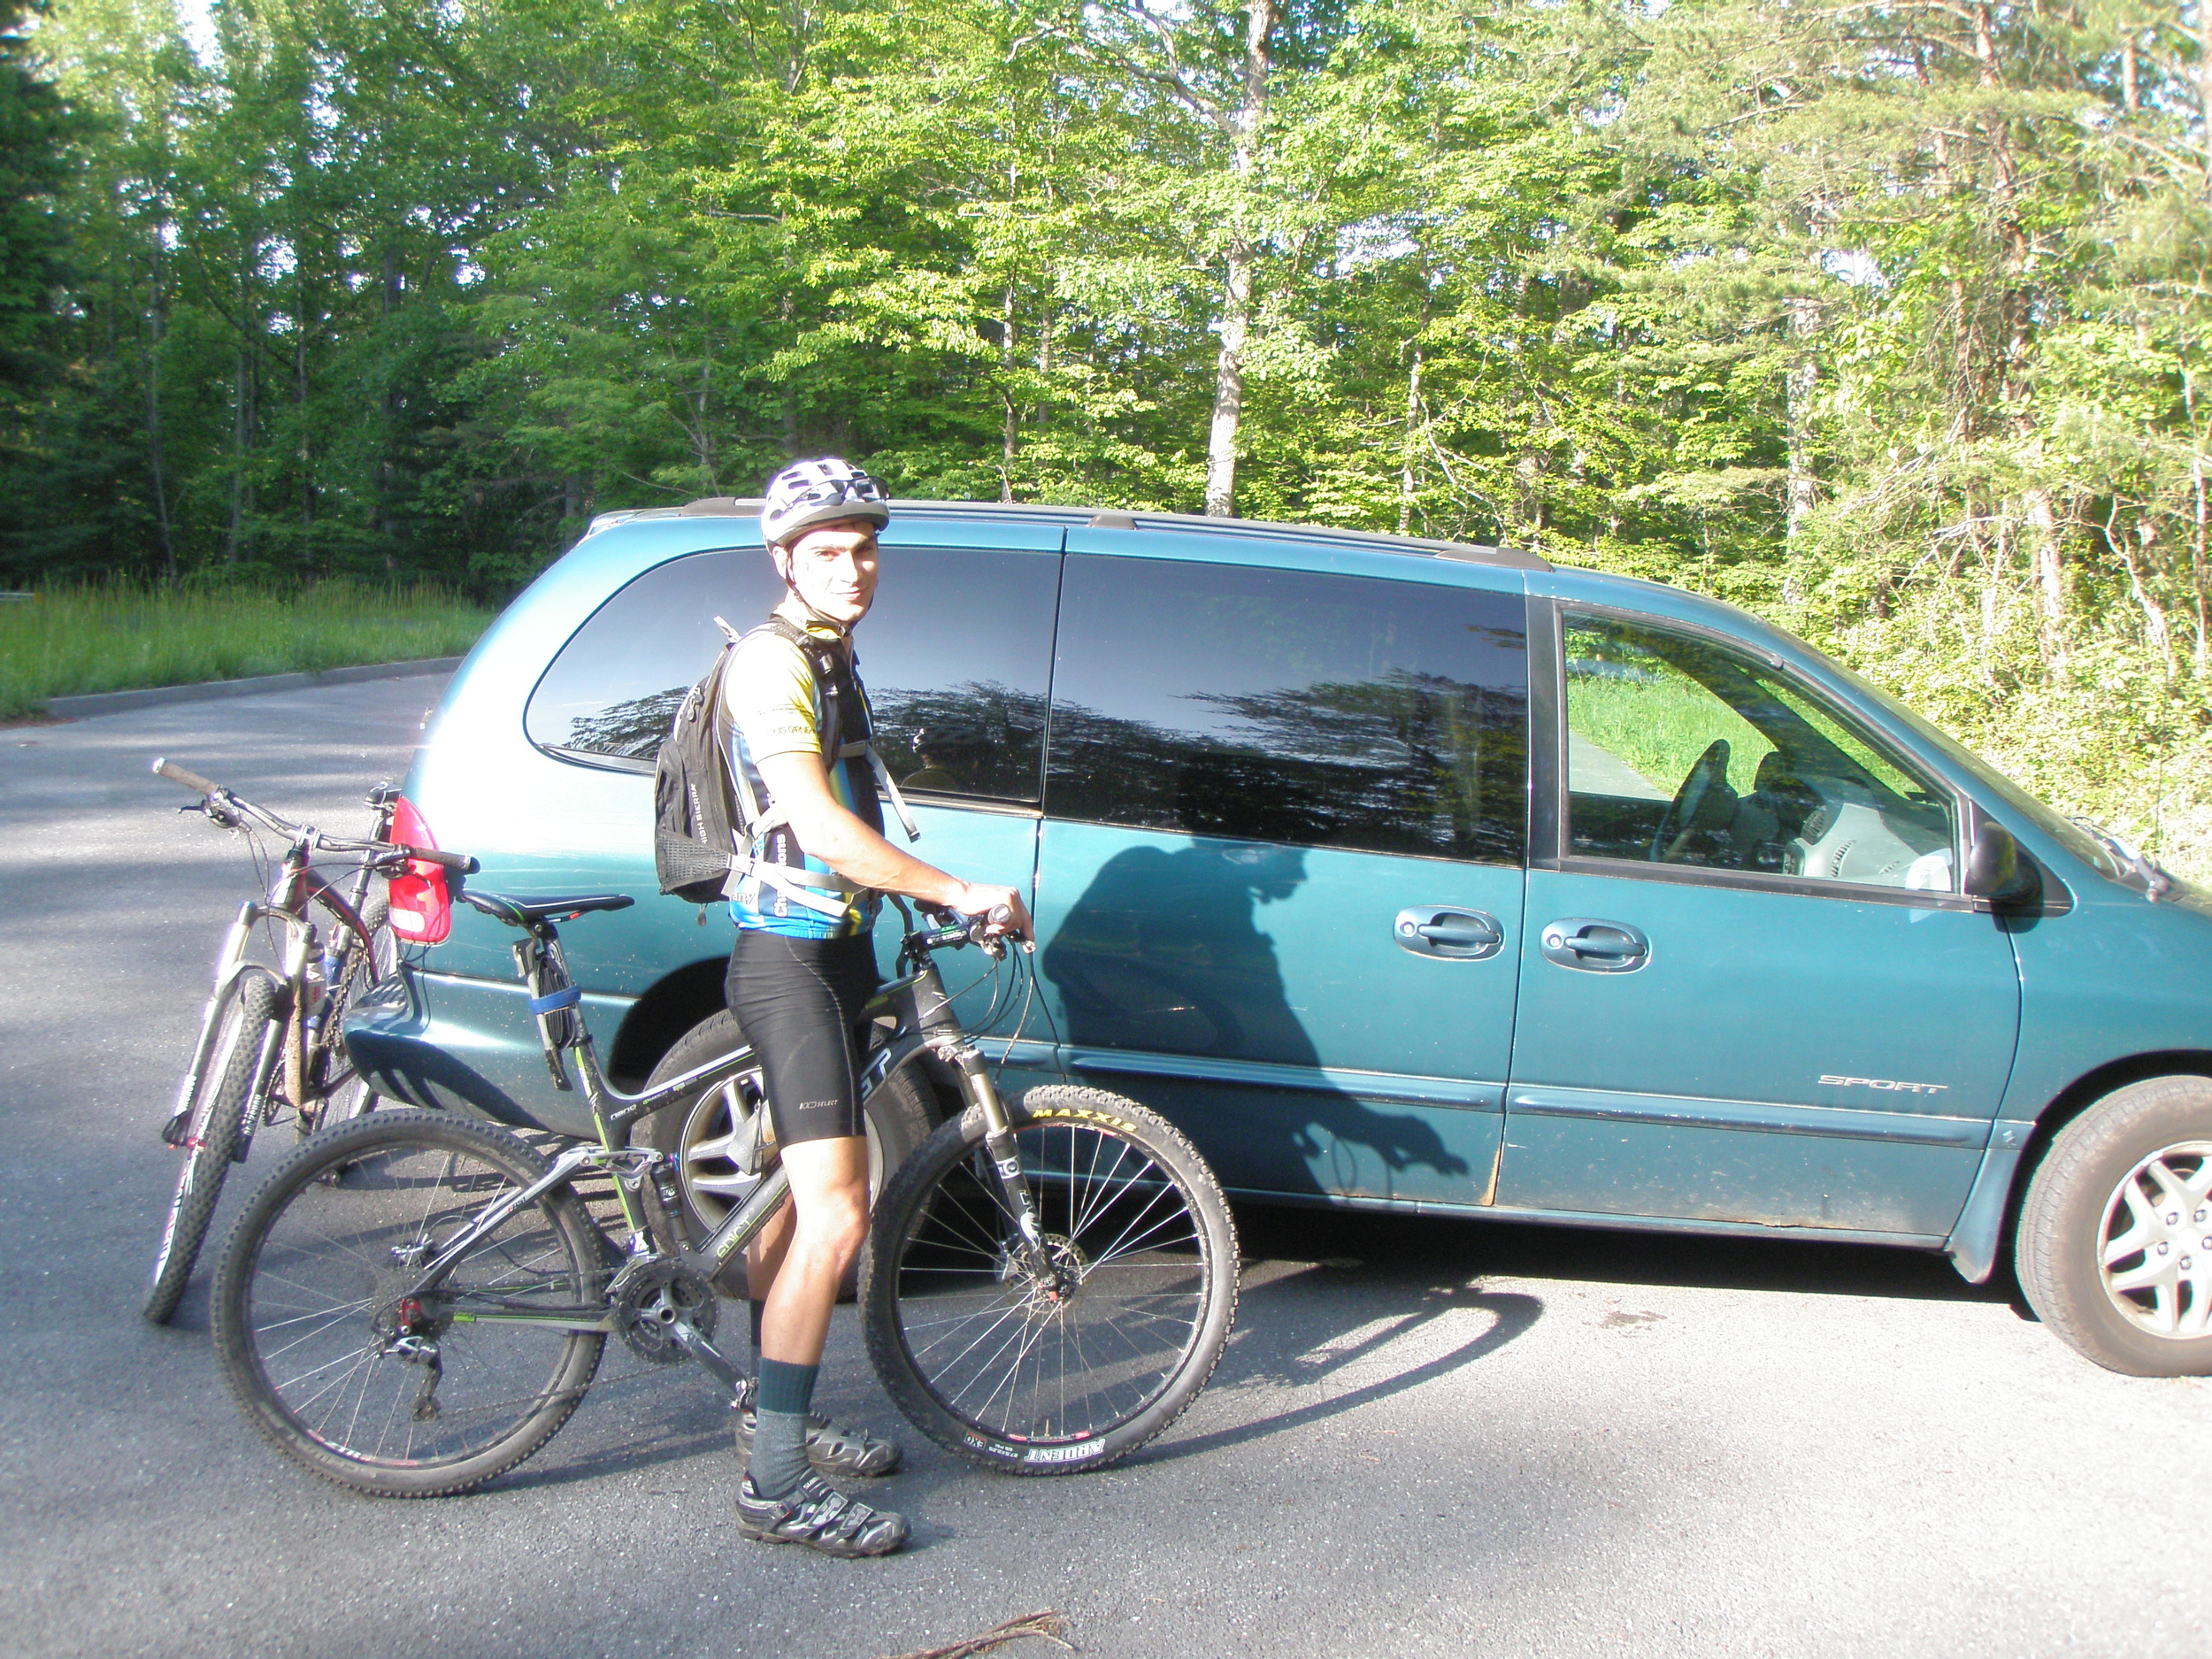 The mini van domestique, returning from the mountain bike ride the next day,